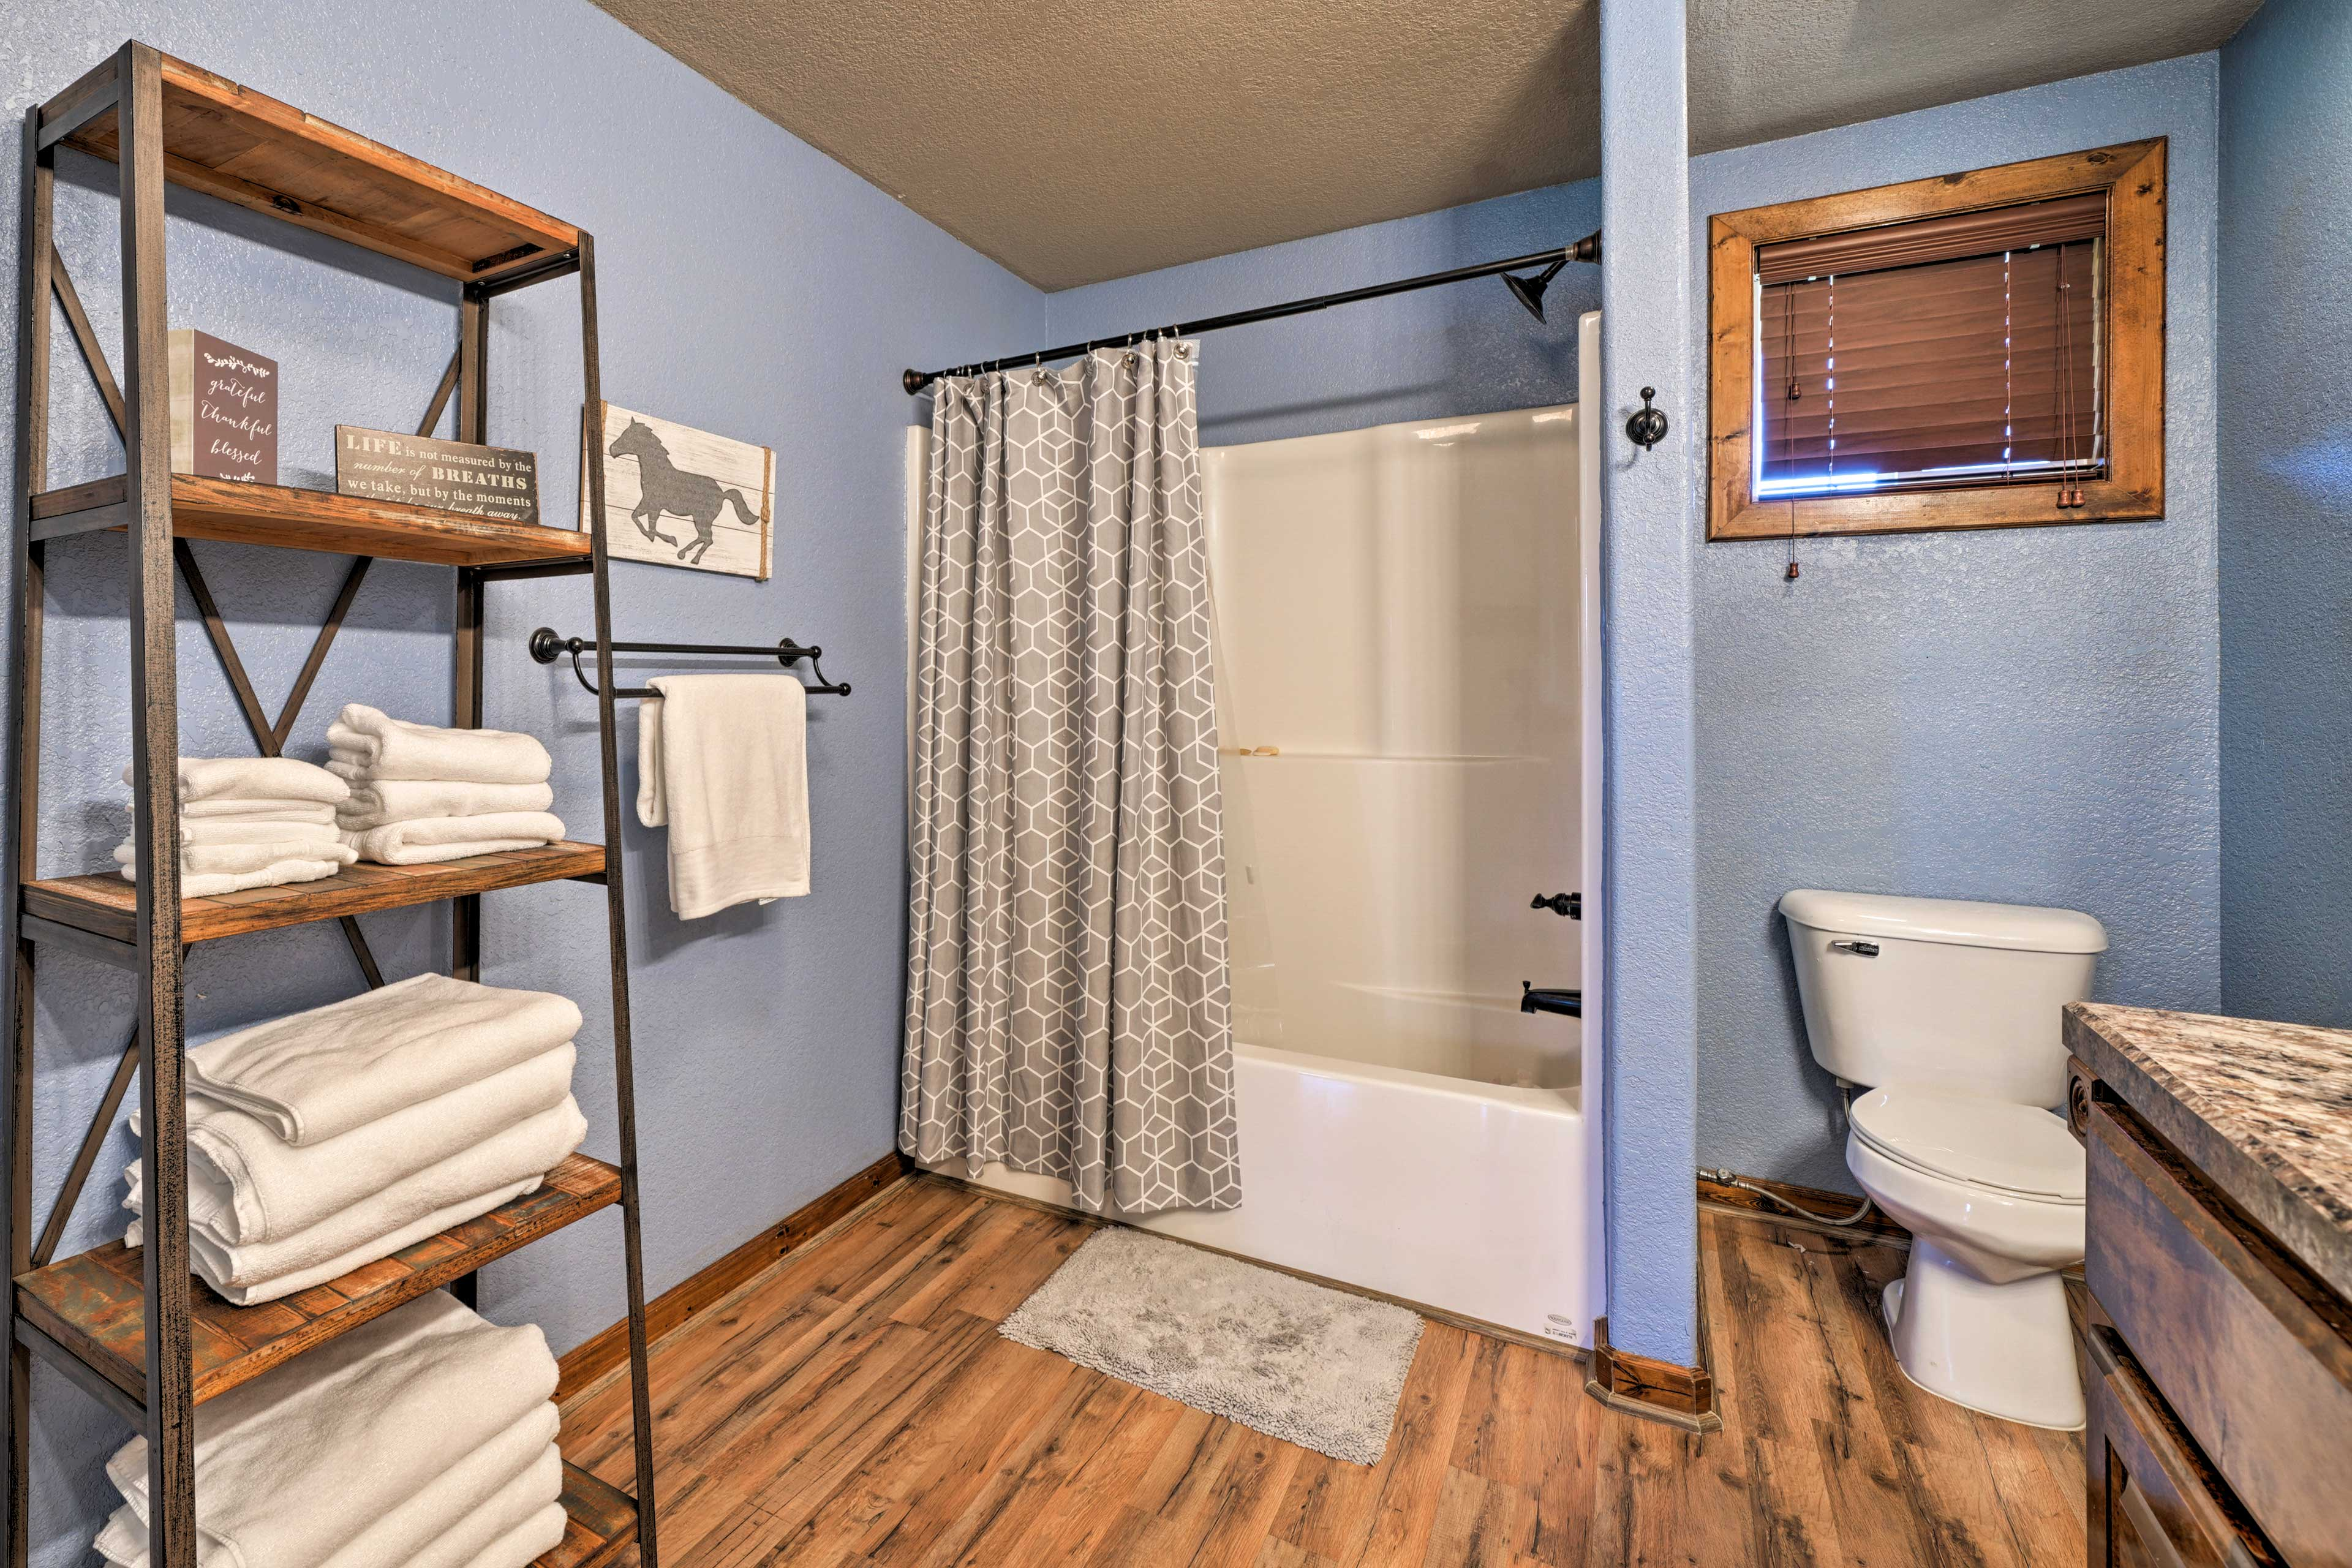 Soft linens and towels are provided so don't need to bring your own!